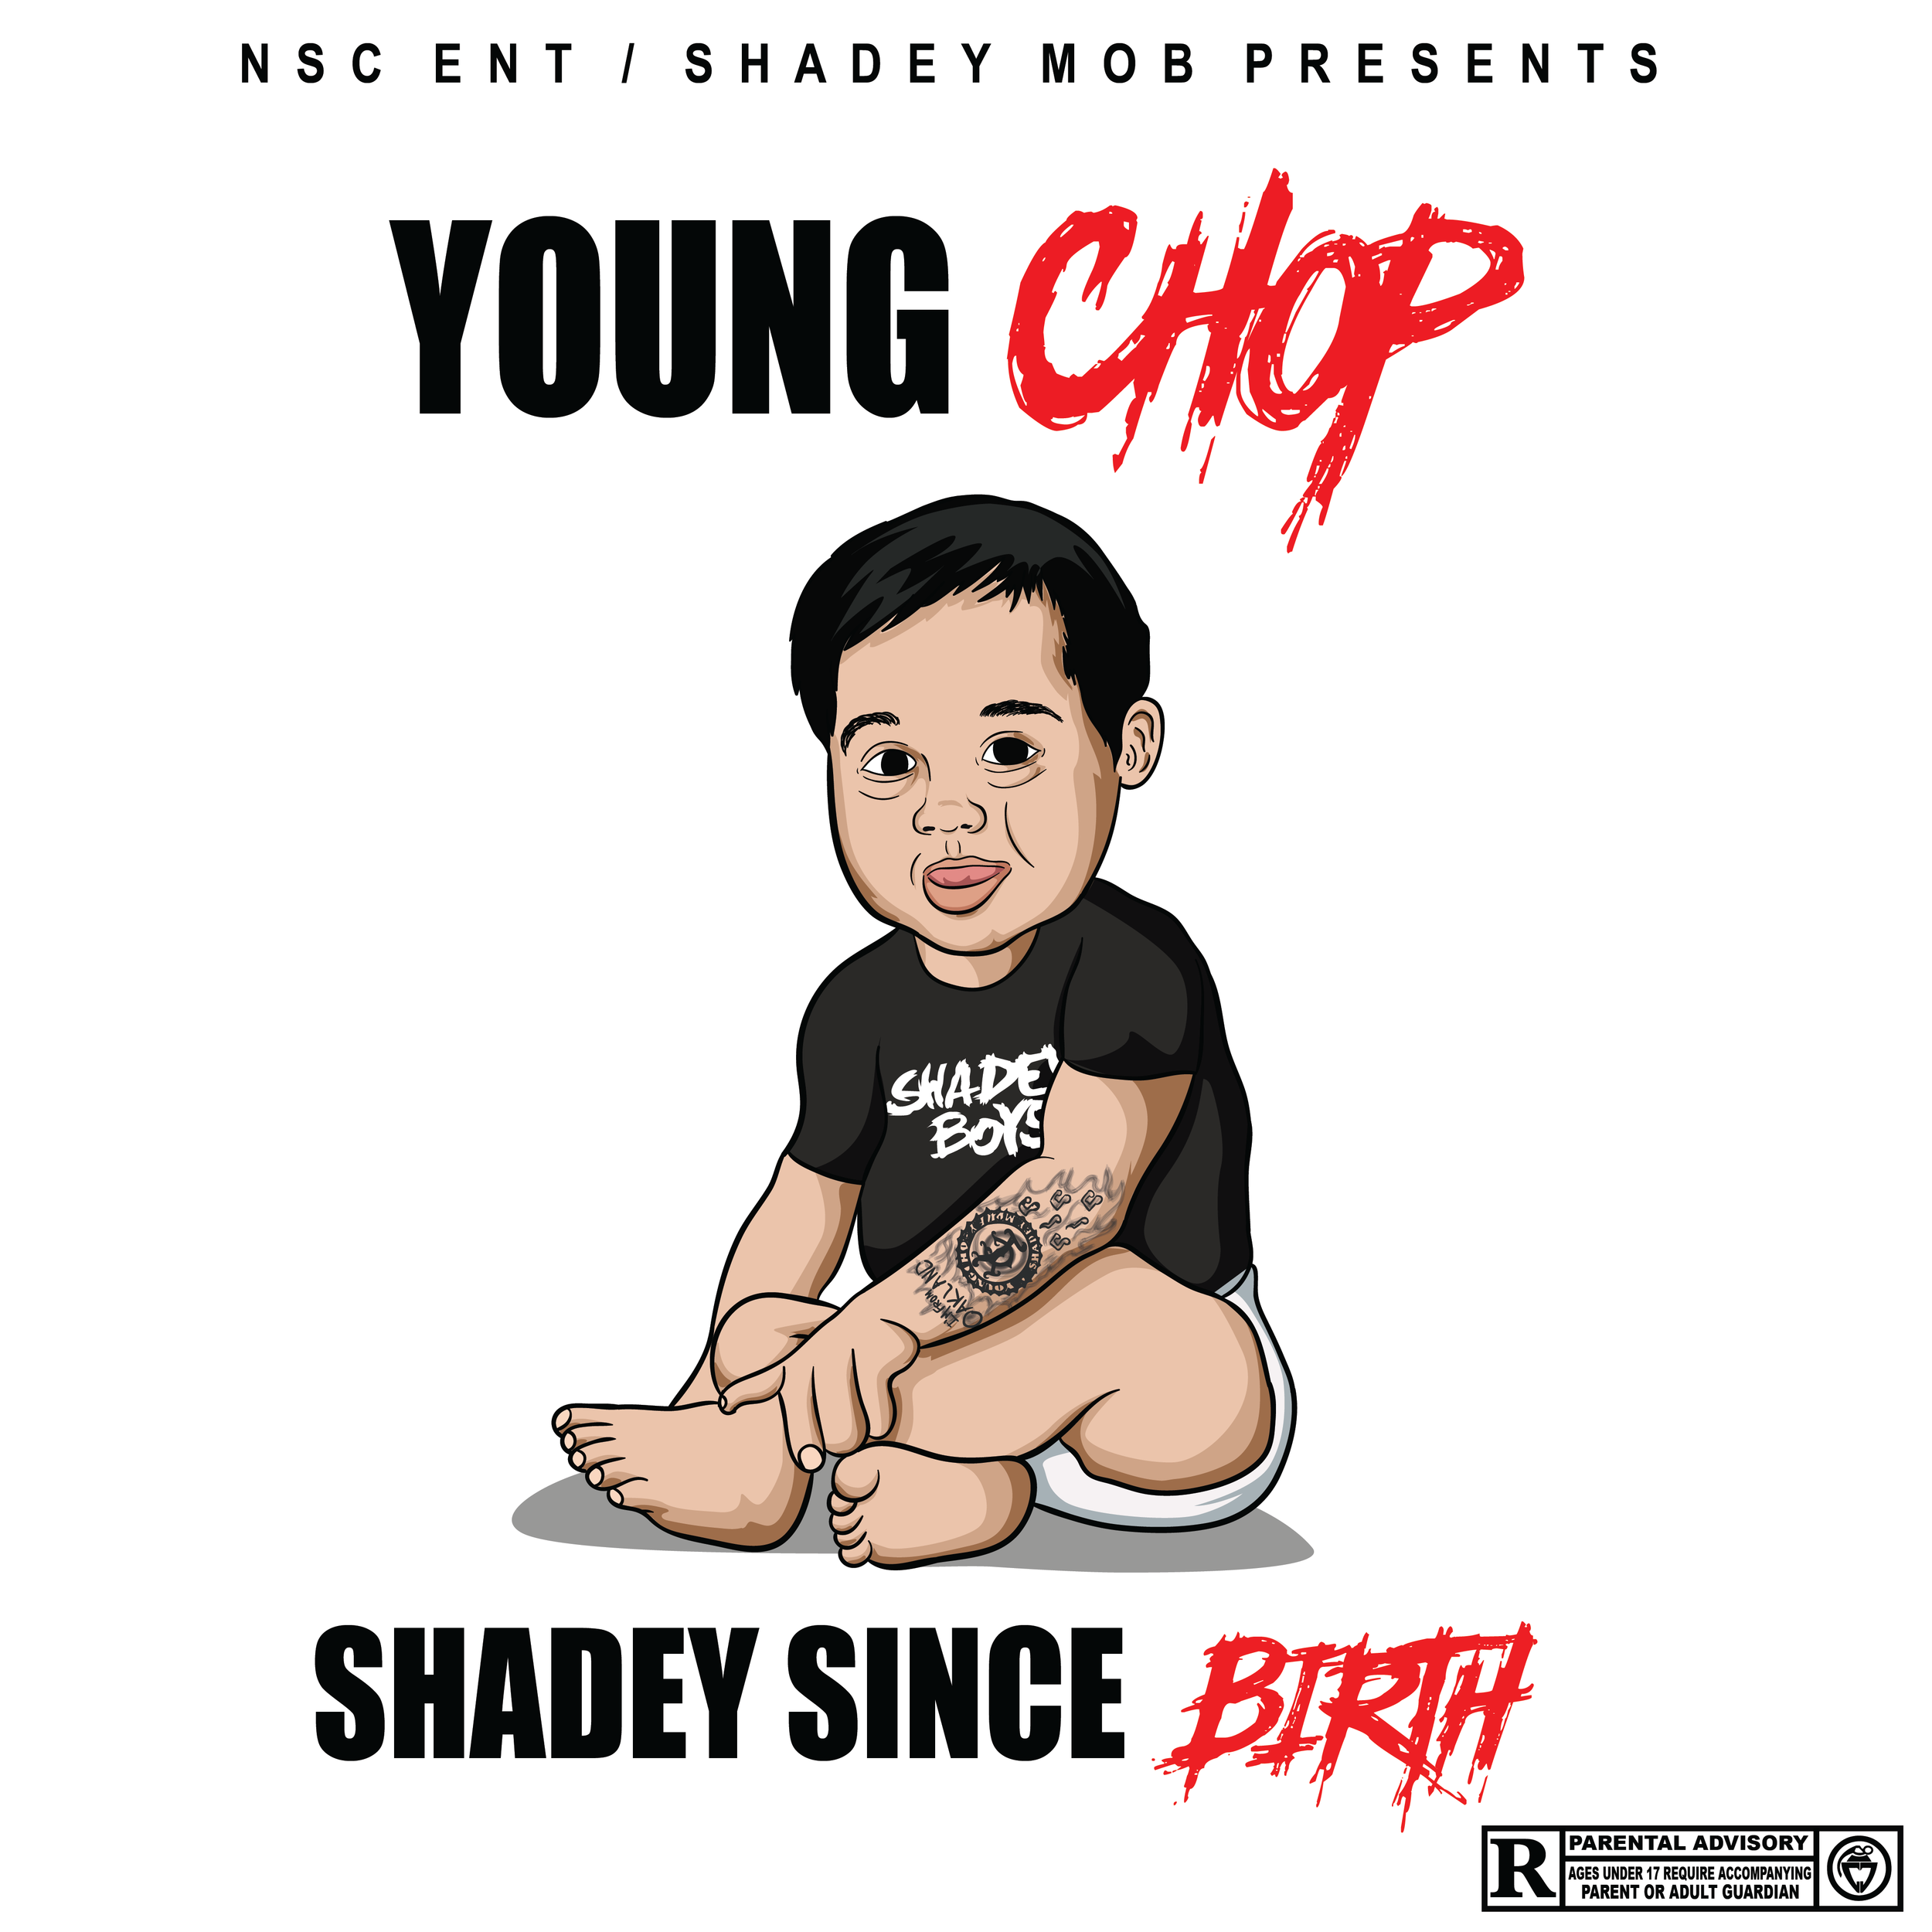 youngchopdone.png